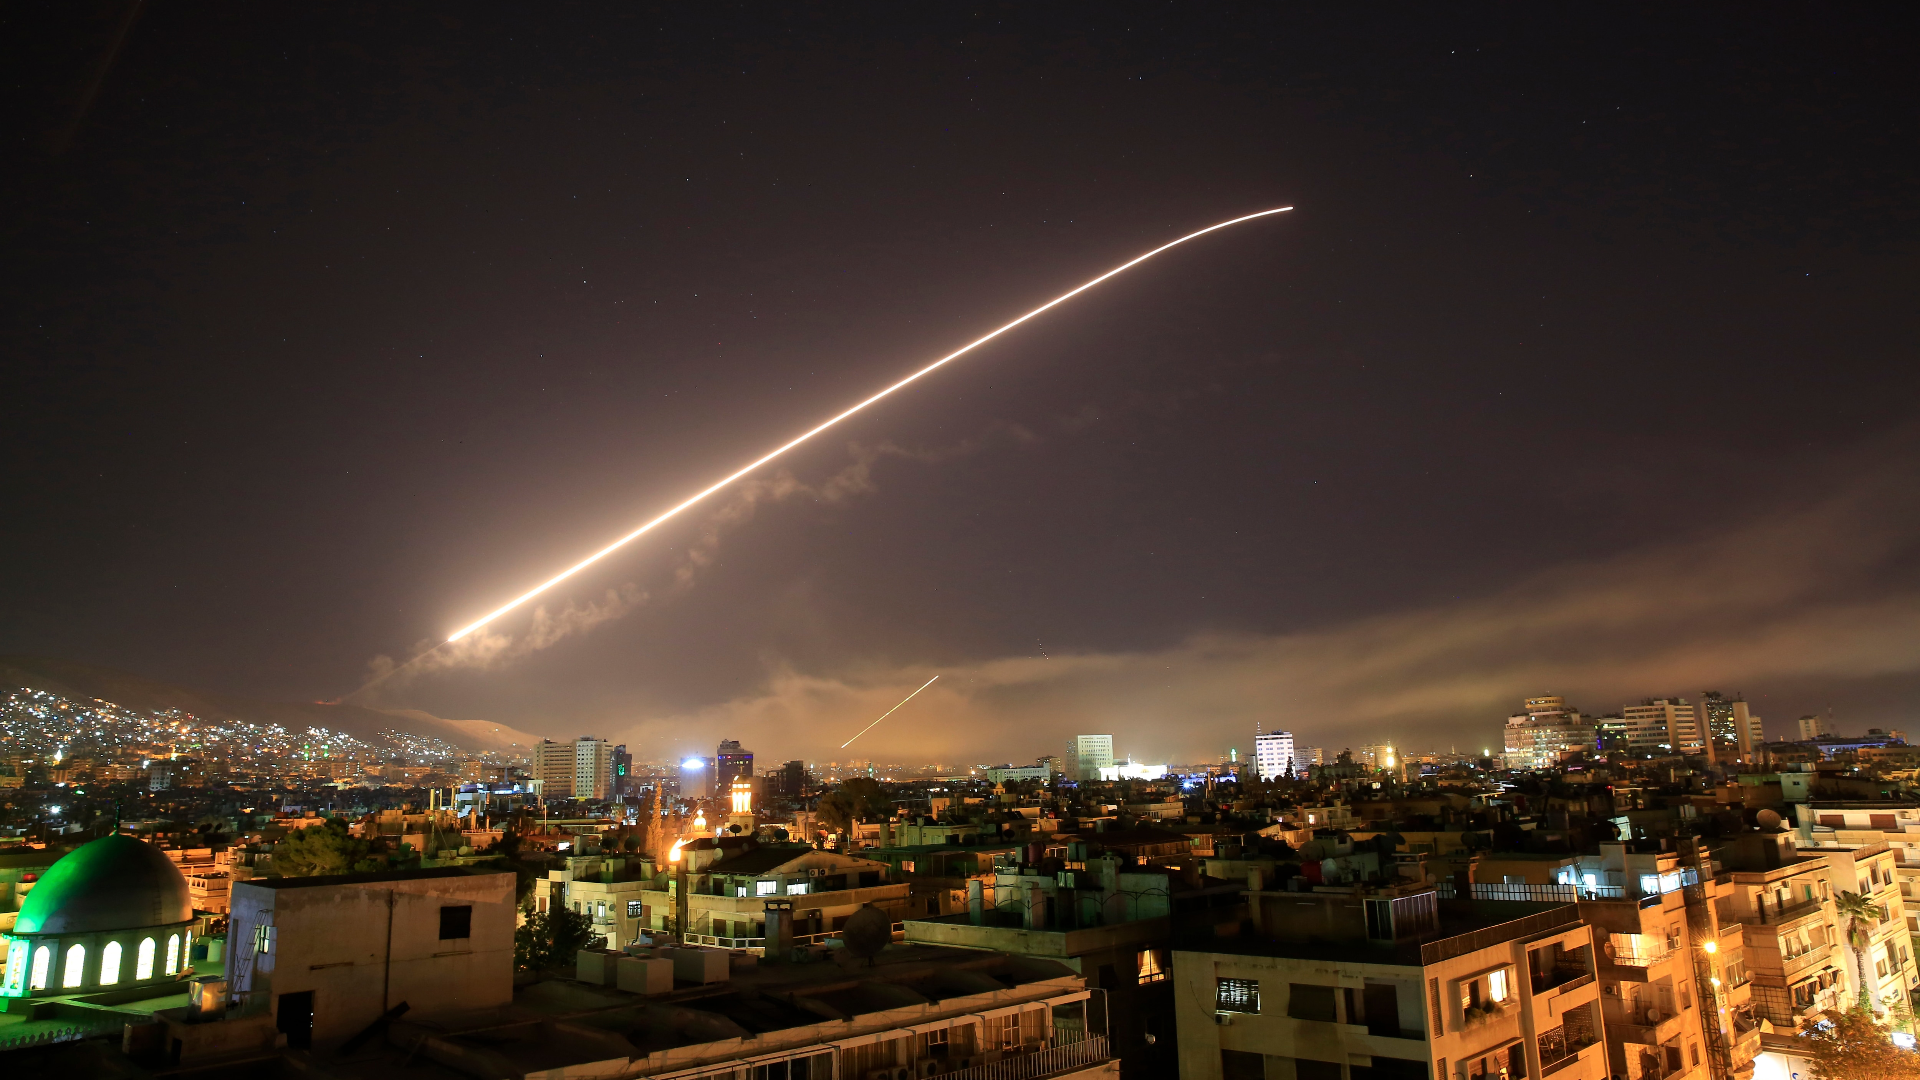 U.S. and allies warn Syria of more missile strikes if chemical attacks used again